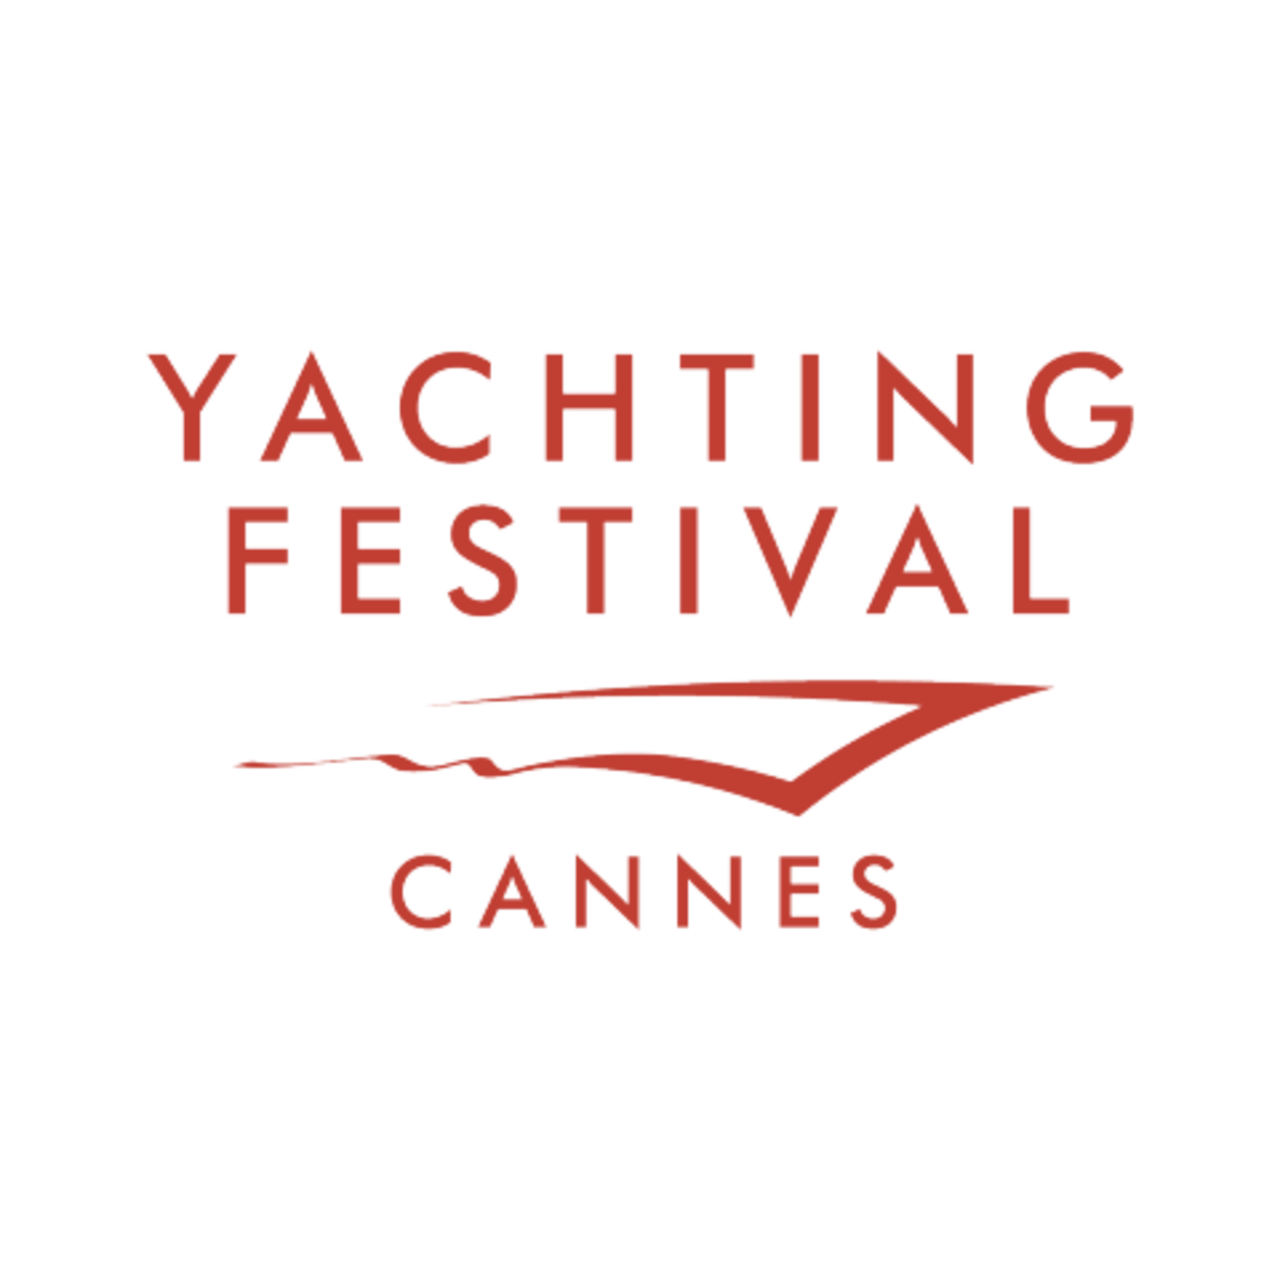 Yachting Festival Cannes   France